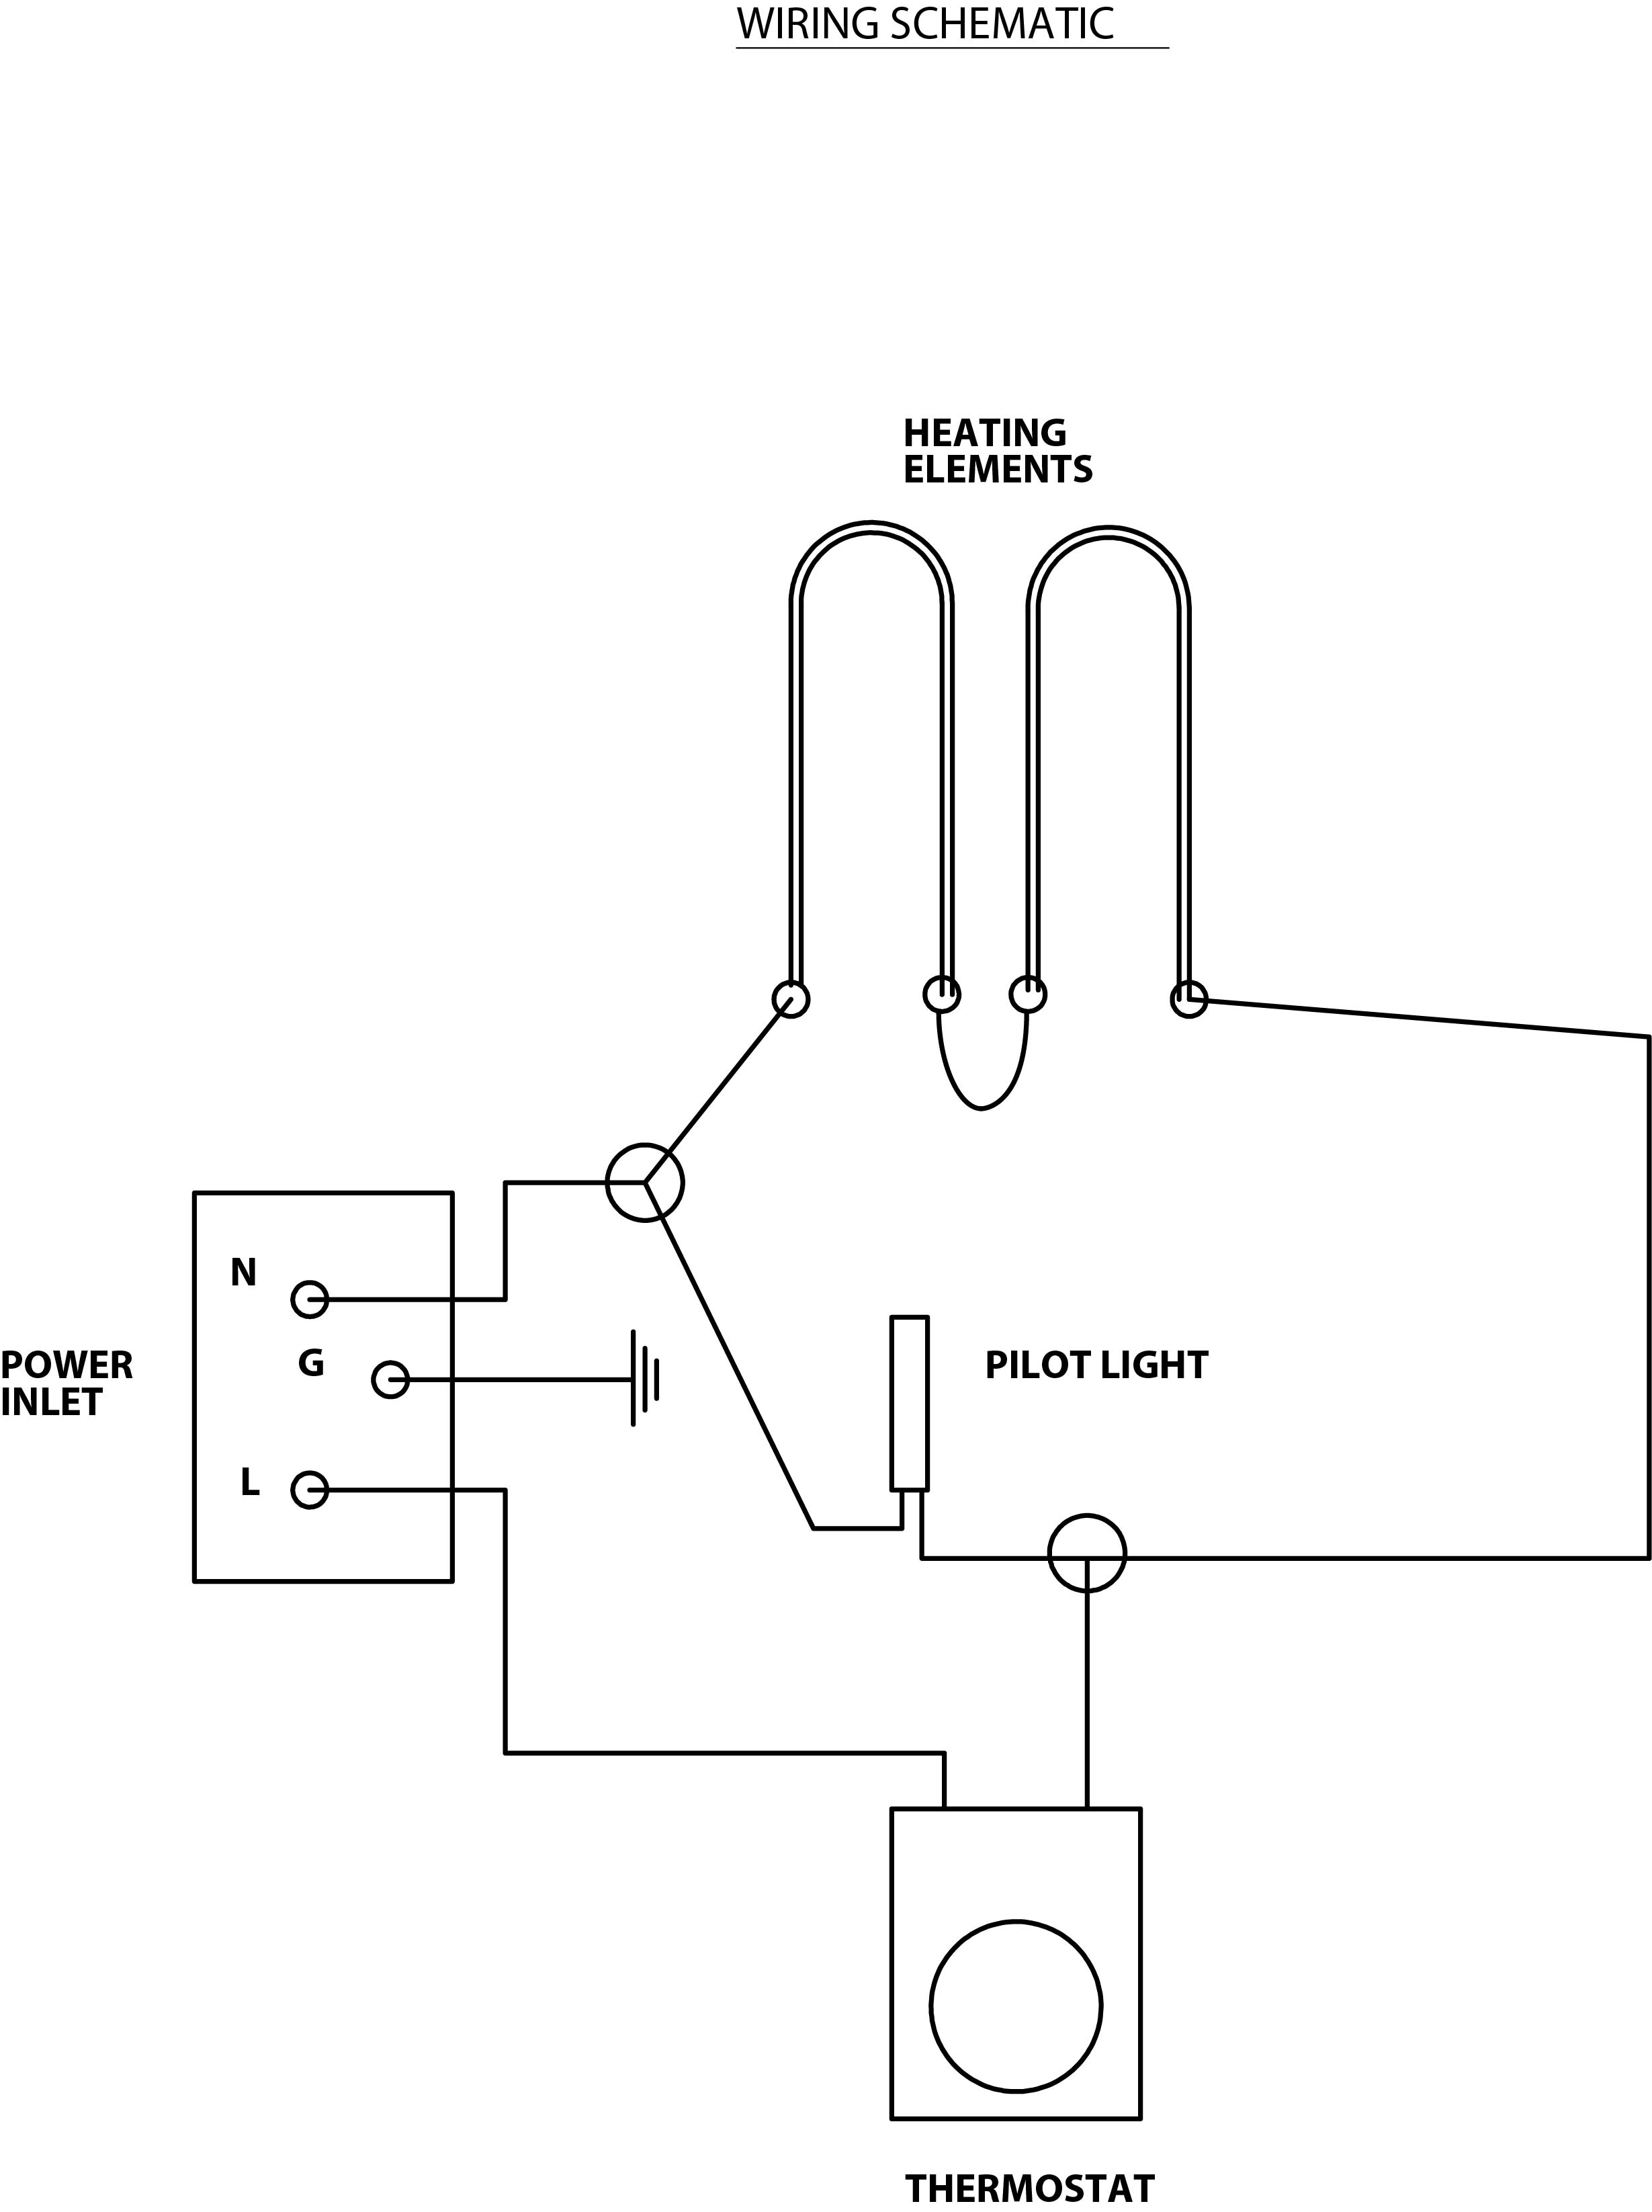 3 Wire Thermostat Wiring Diagram from phx-international.com